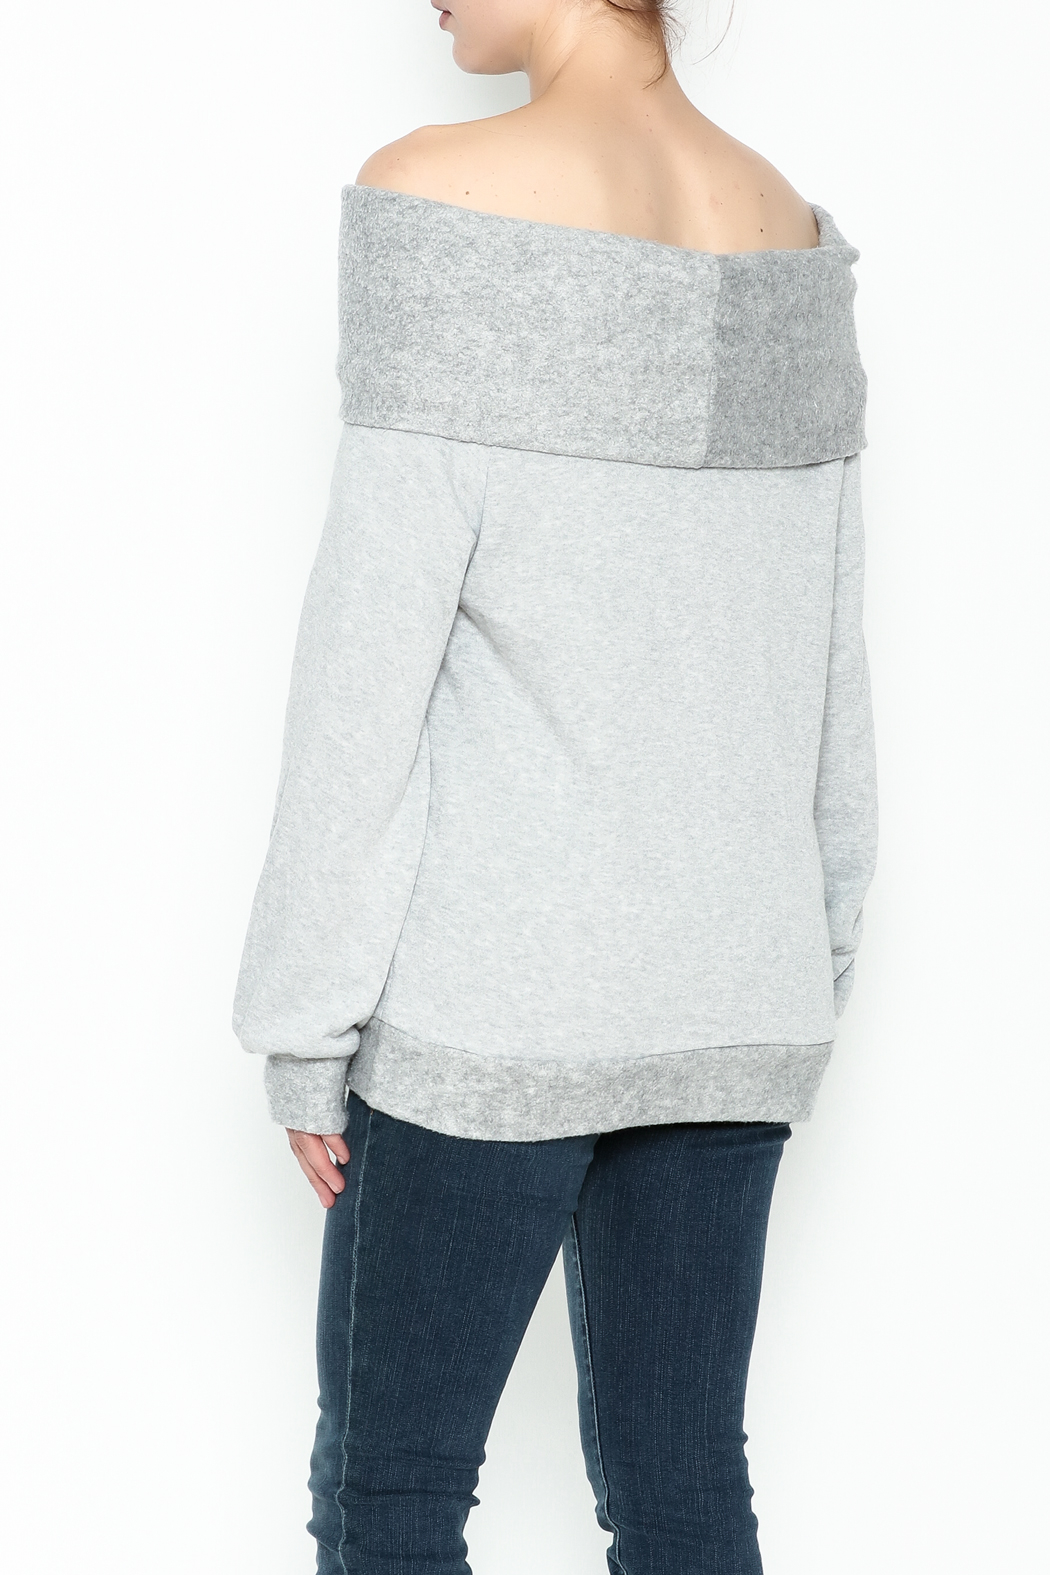 Elan Convertible Cowl Sweater - Back Cropped Image